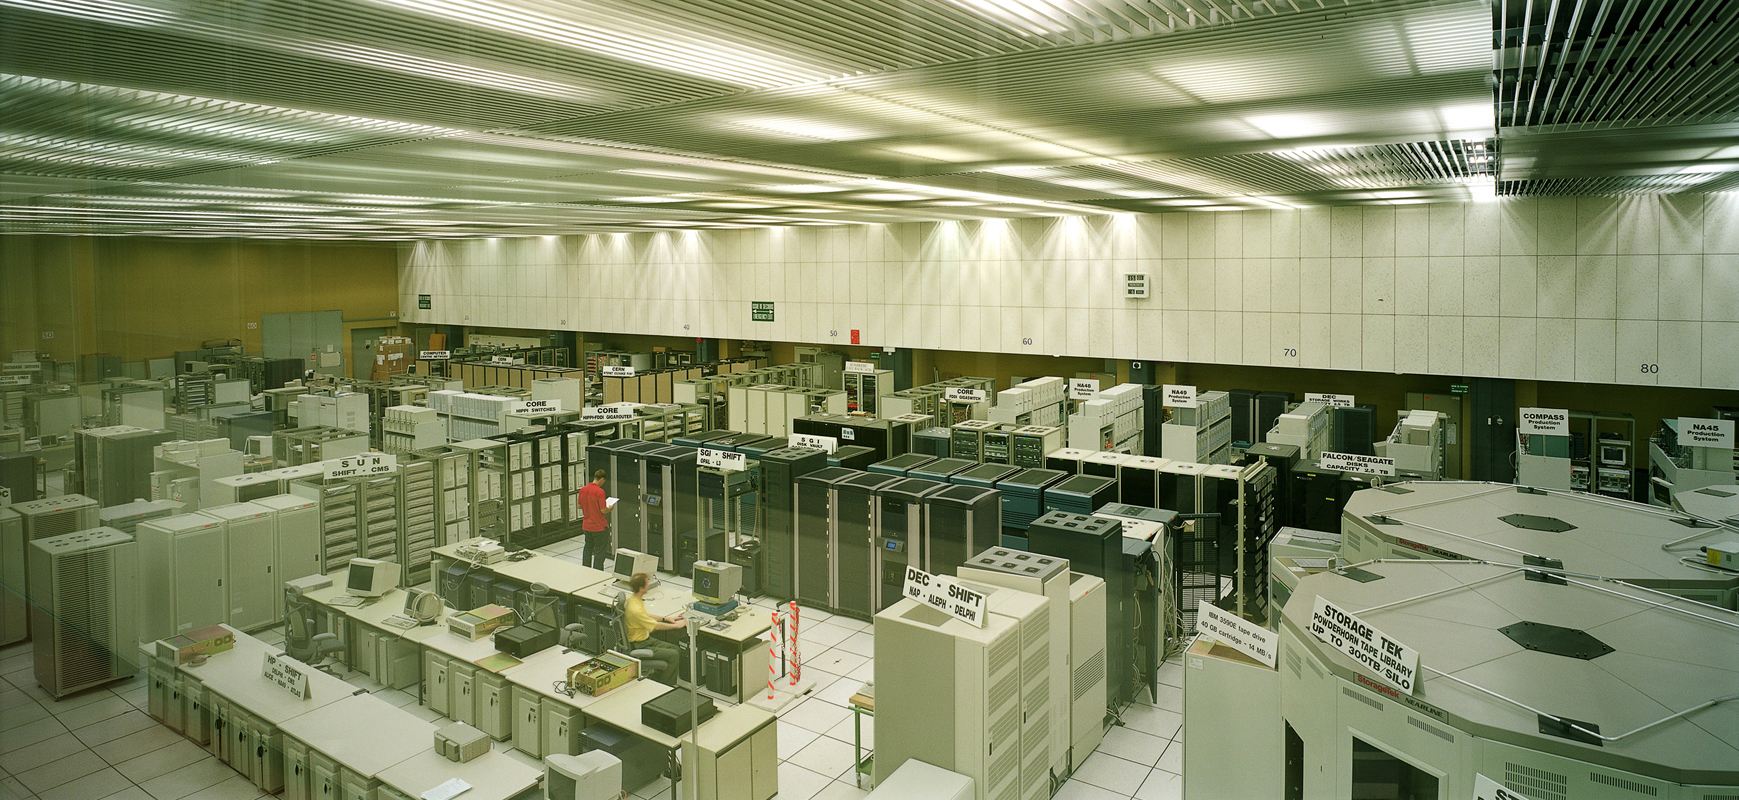 Armin Linke, CERN, European Organization for Nuclear Research, computer room / Geneva Switzerland, 2000 © Armin Linke, Photo: Courtesy of the artist